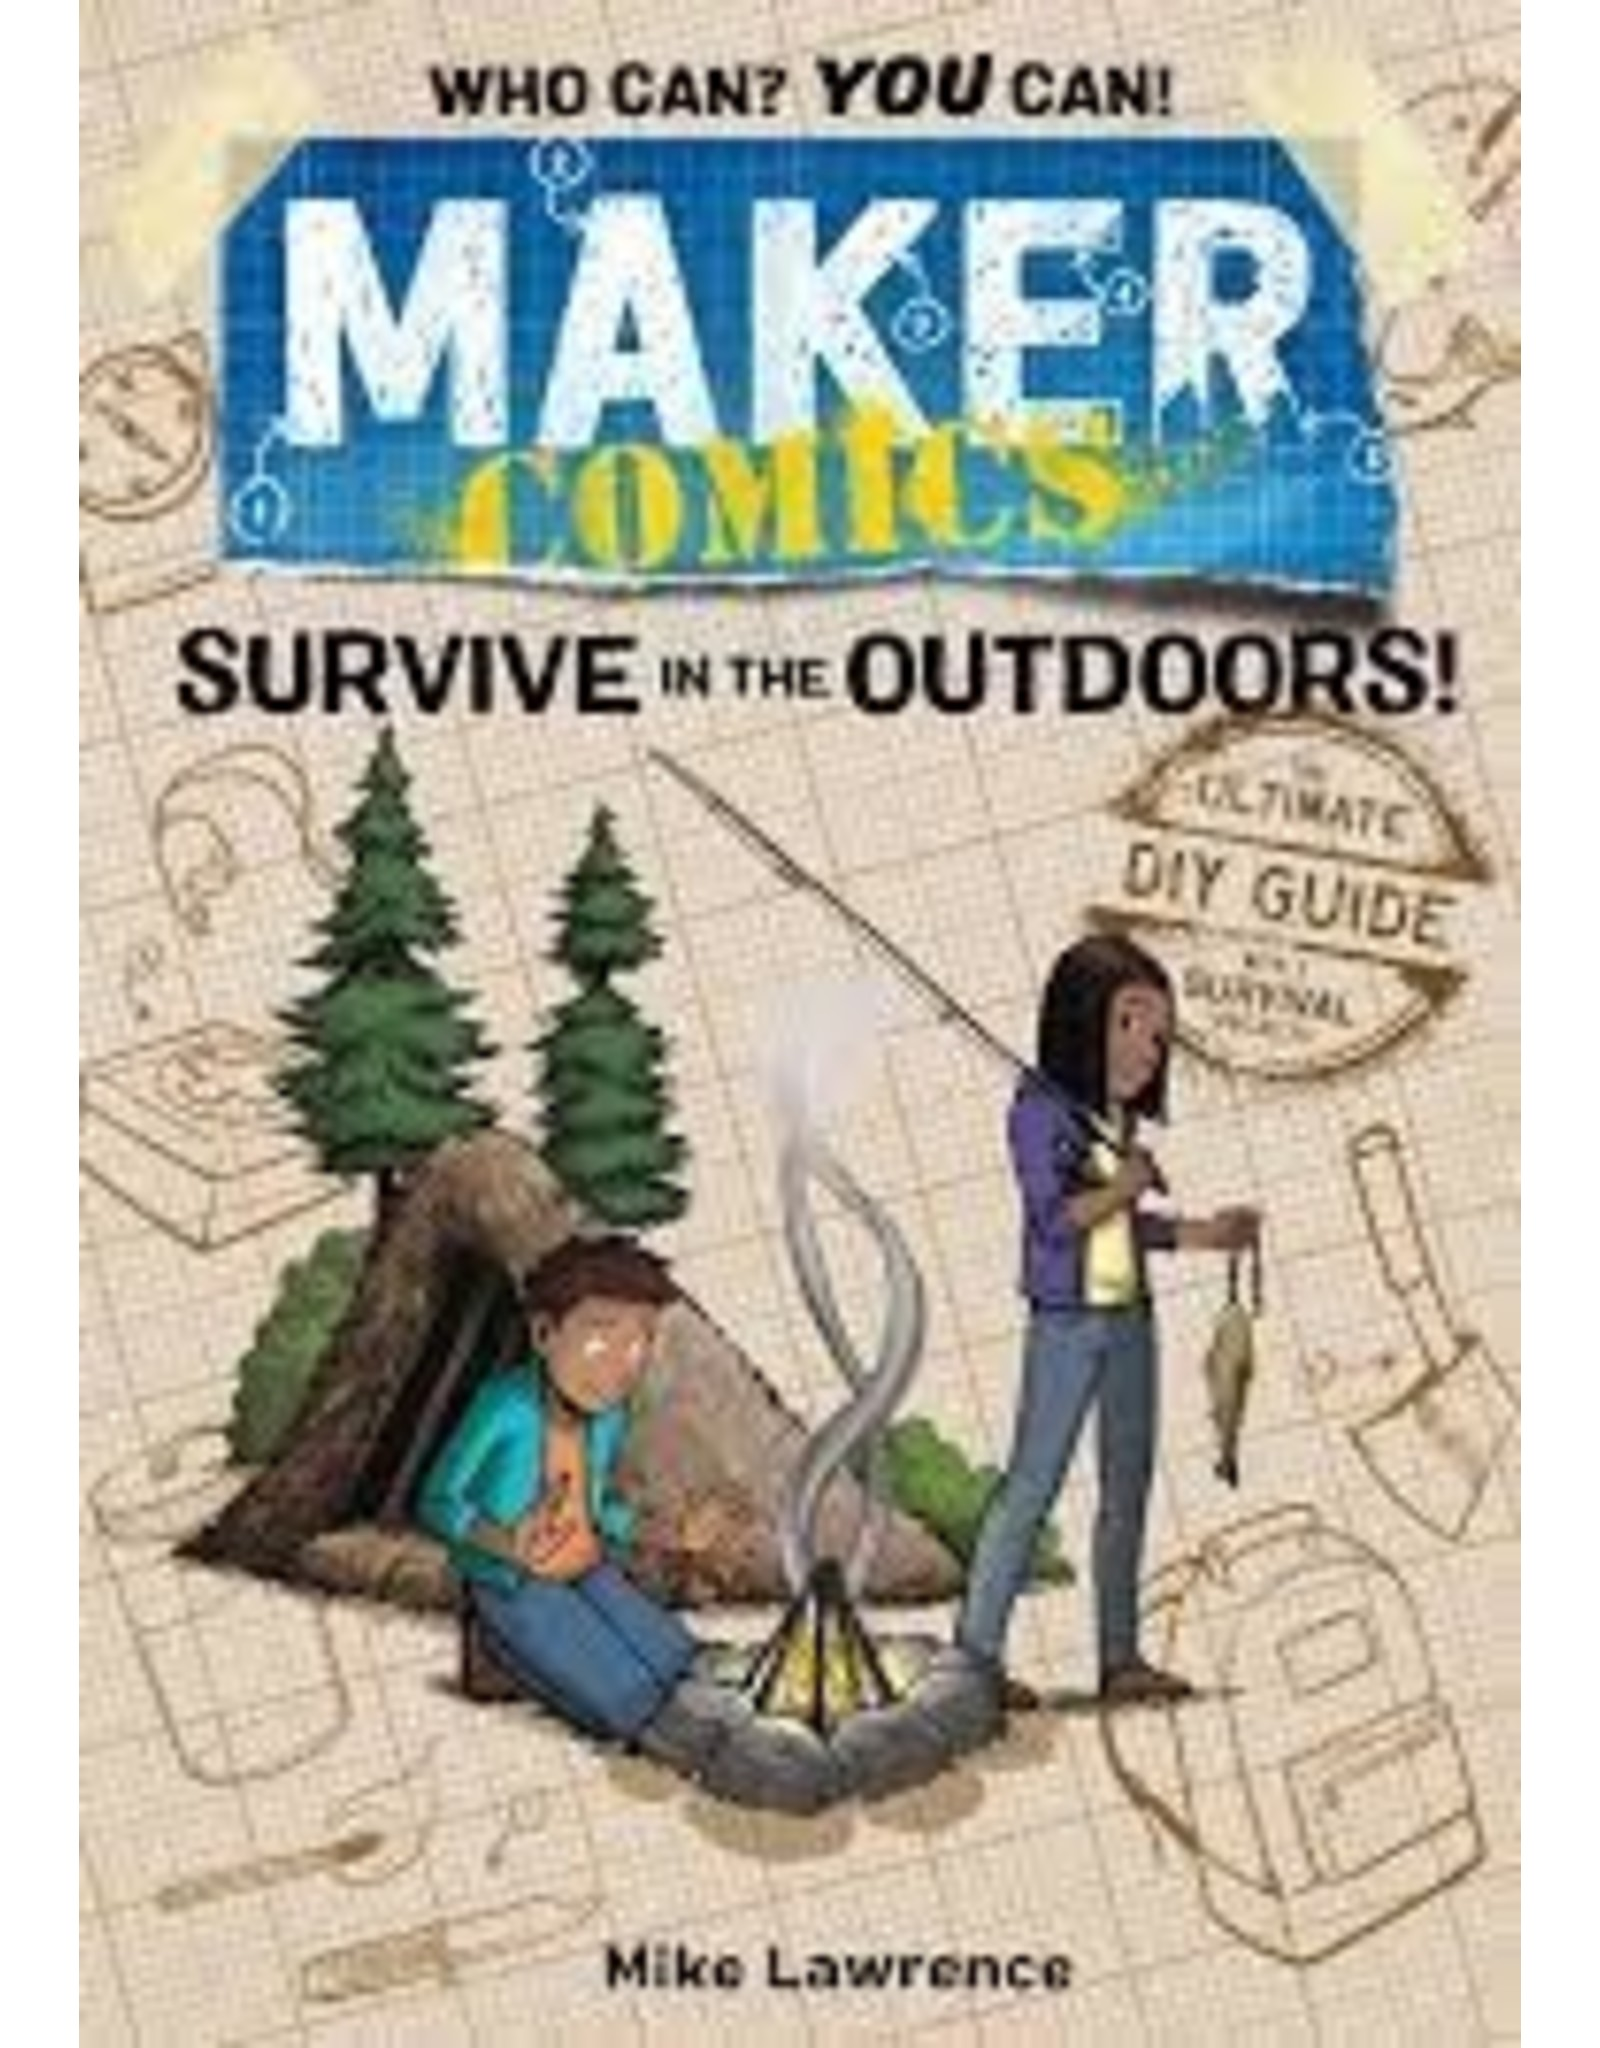 Books Maker Comics: Survive the Outdoors by Mike Lawrence